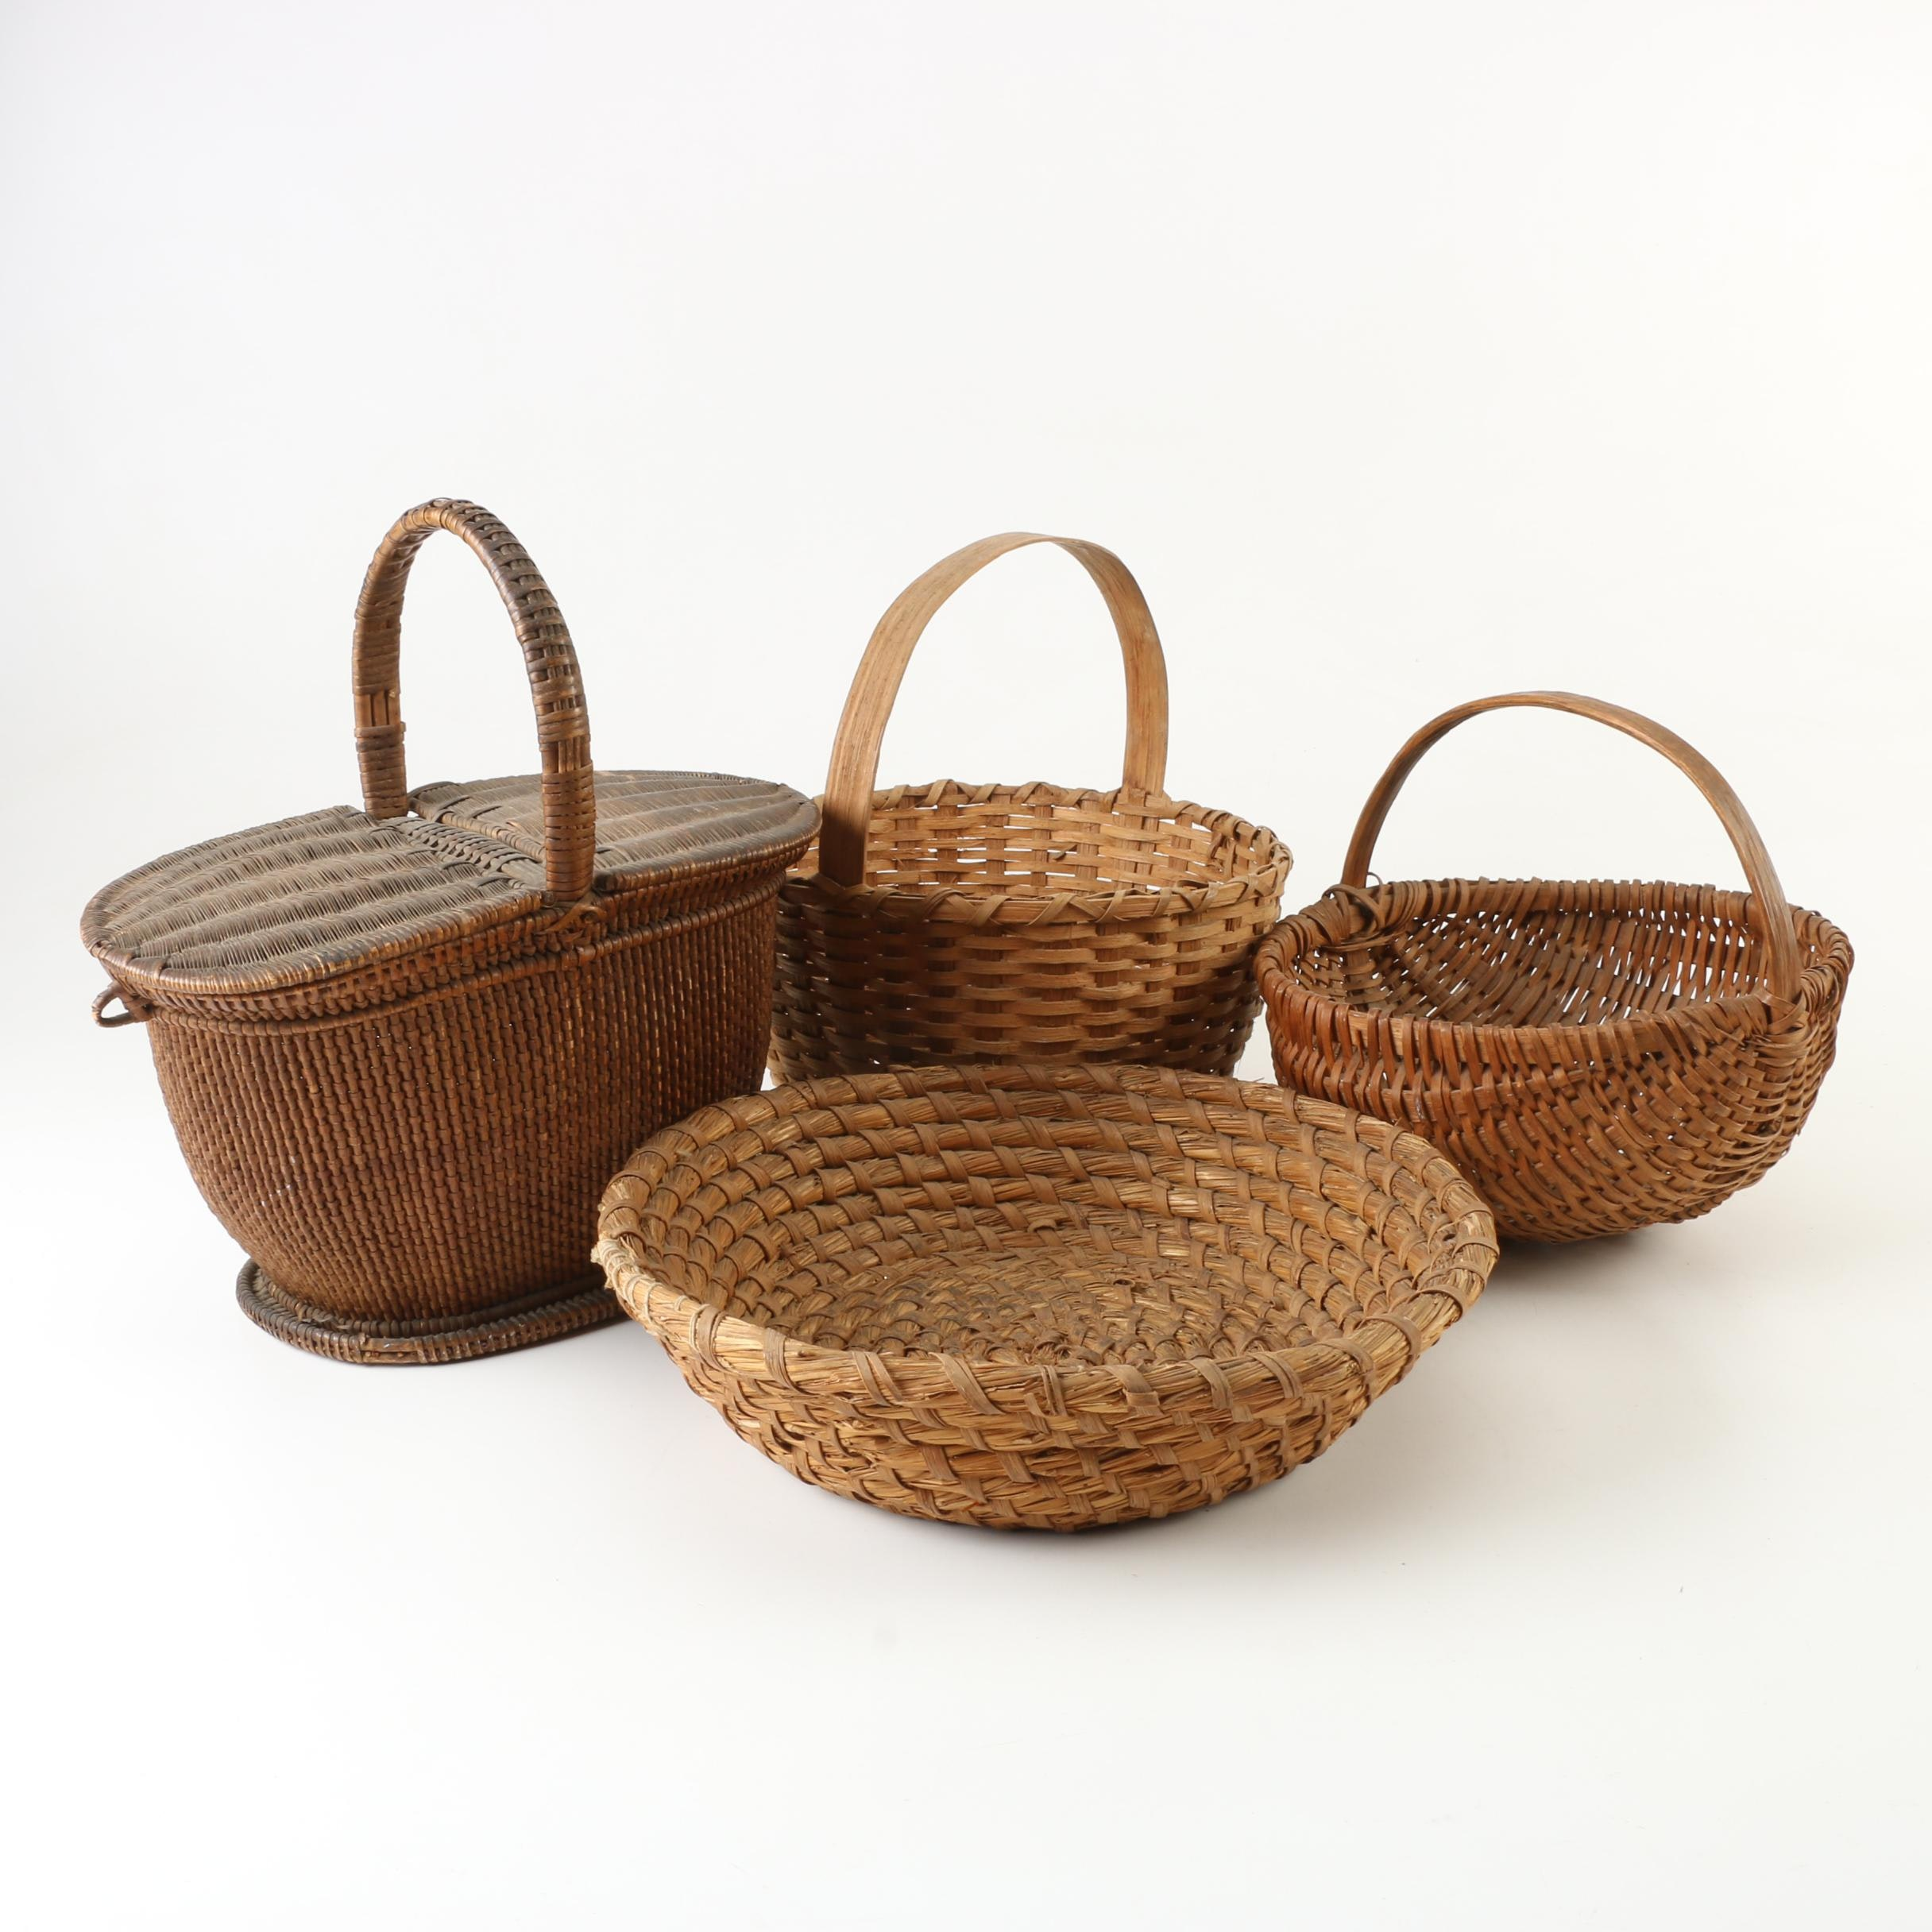 Vintage Picnic and Handled Baskets with Woven Bowl